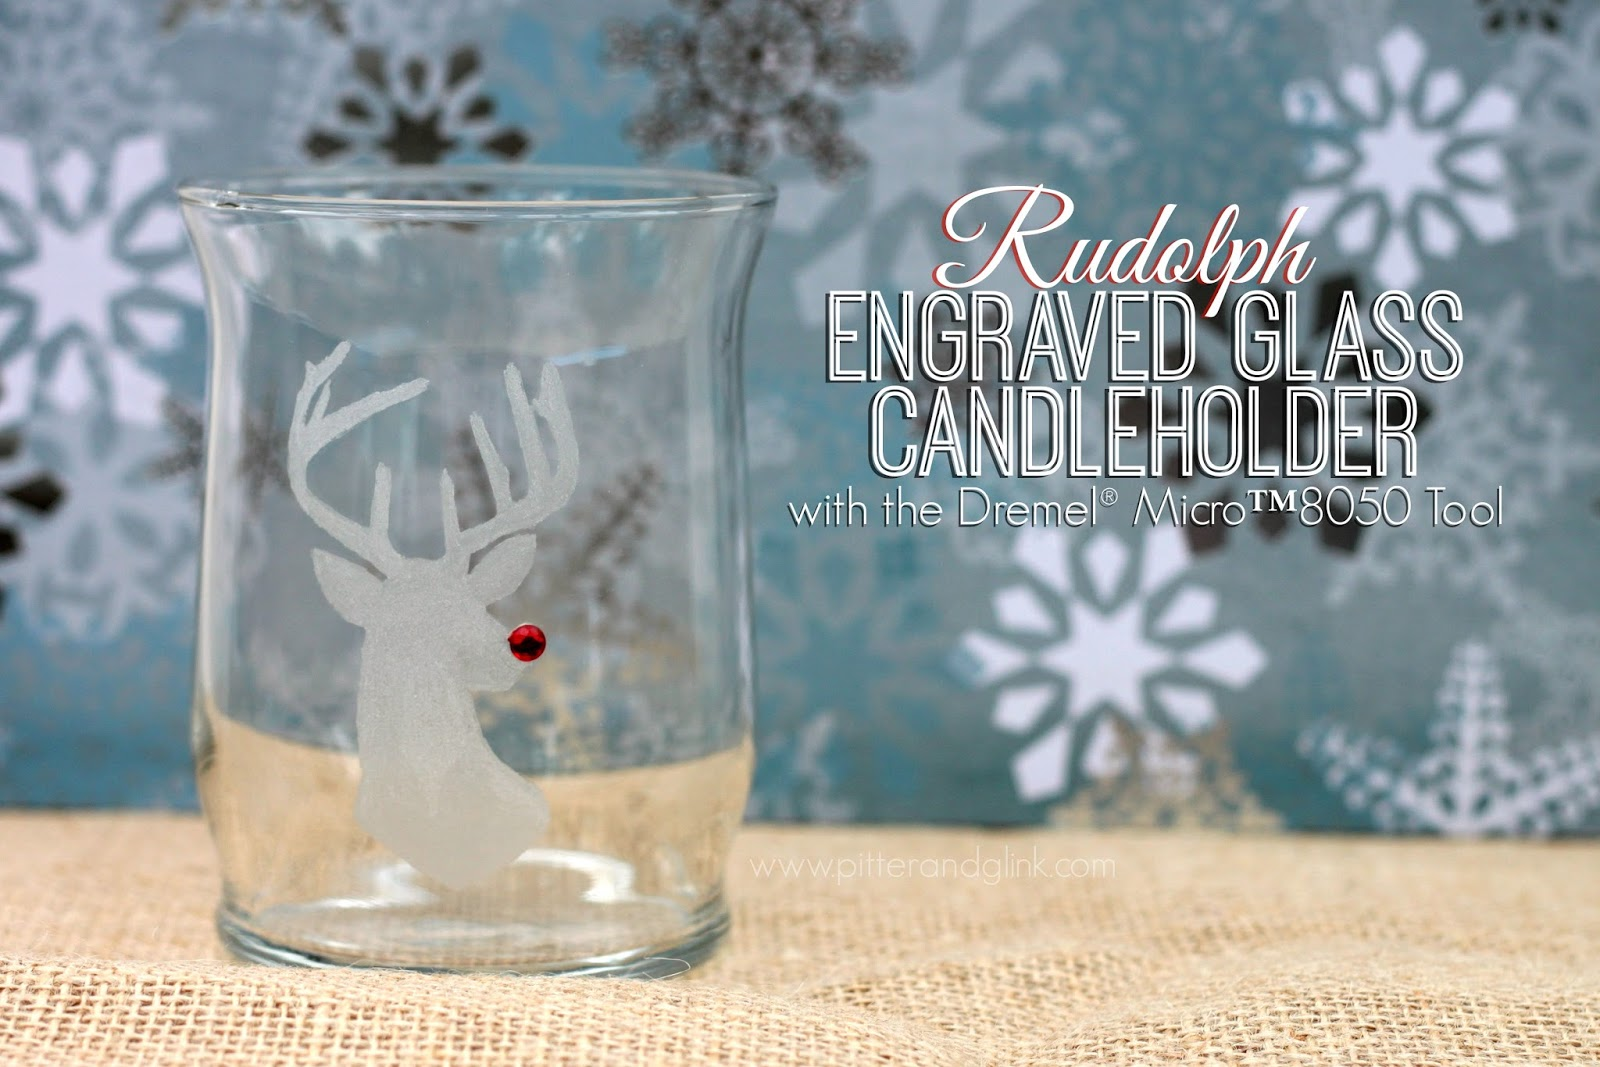 Make a Rudolph Engraved Glass Candle Holder with the Dremel Micro pitterandglink.com